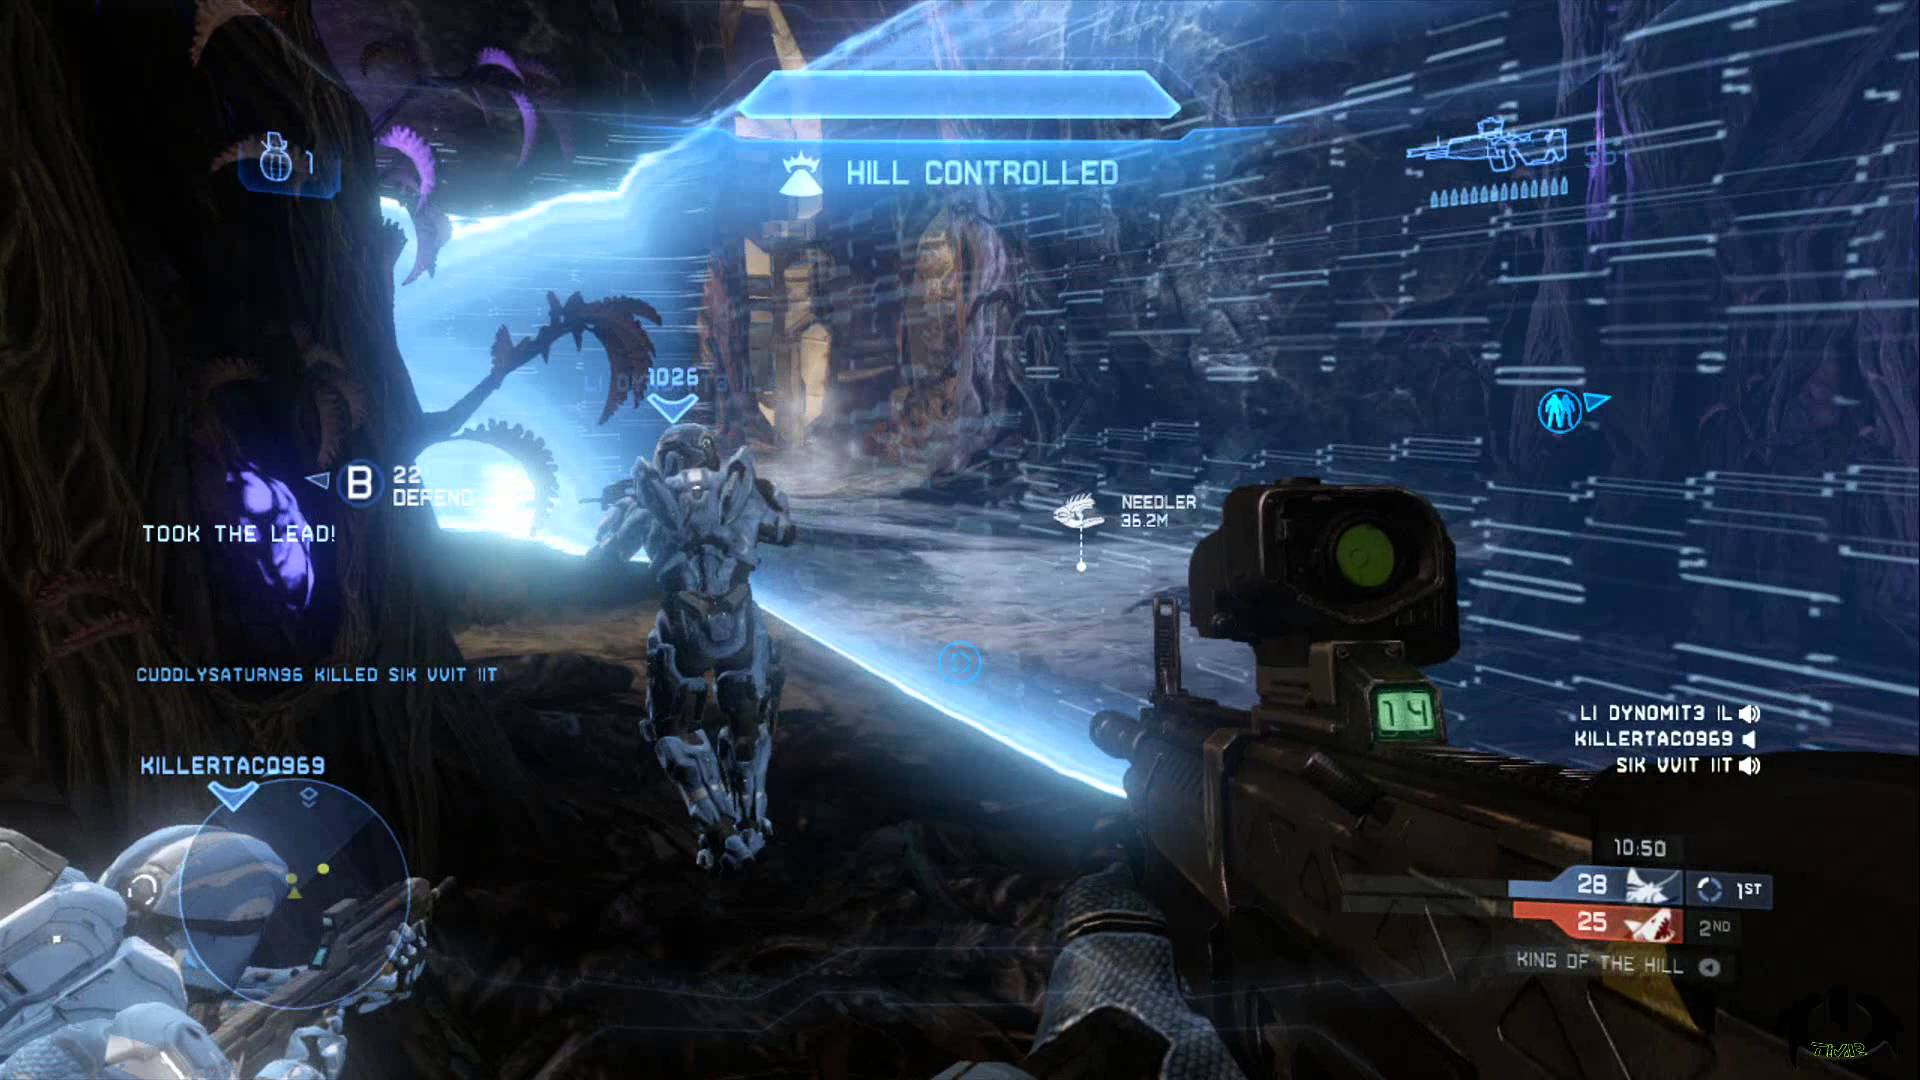 Halo 4 Multiplayer Wallpaper 1080p Images Pictures   Becuo 1920x1080